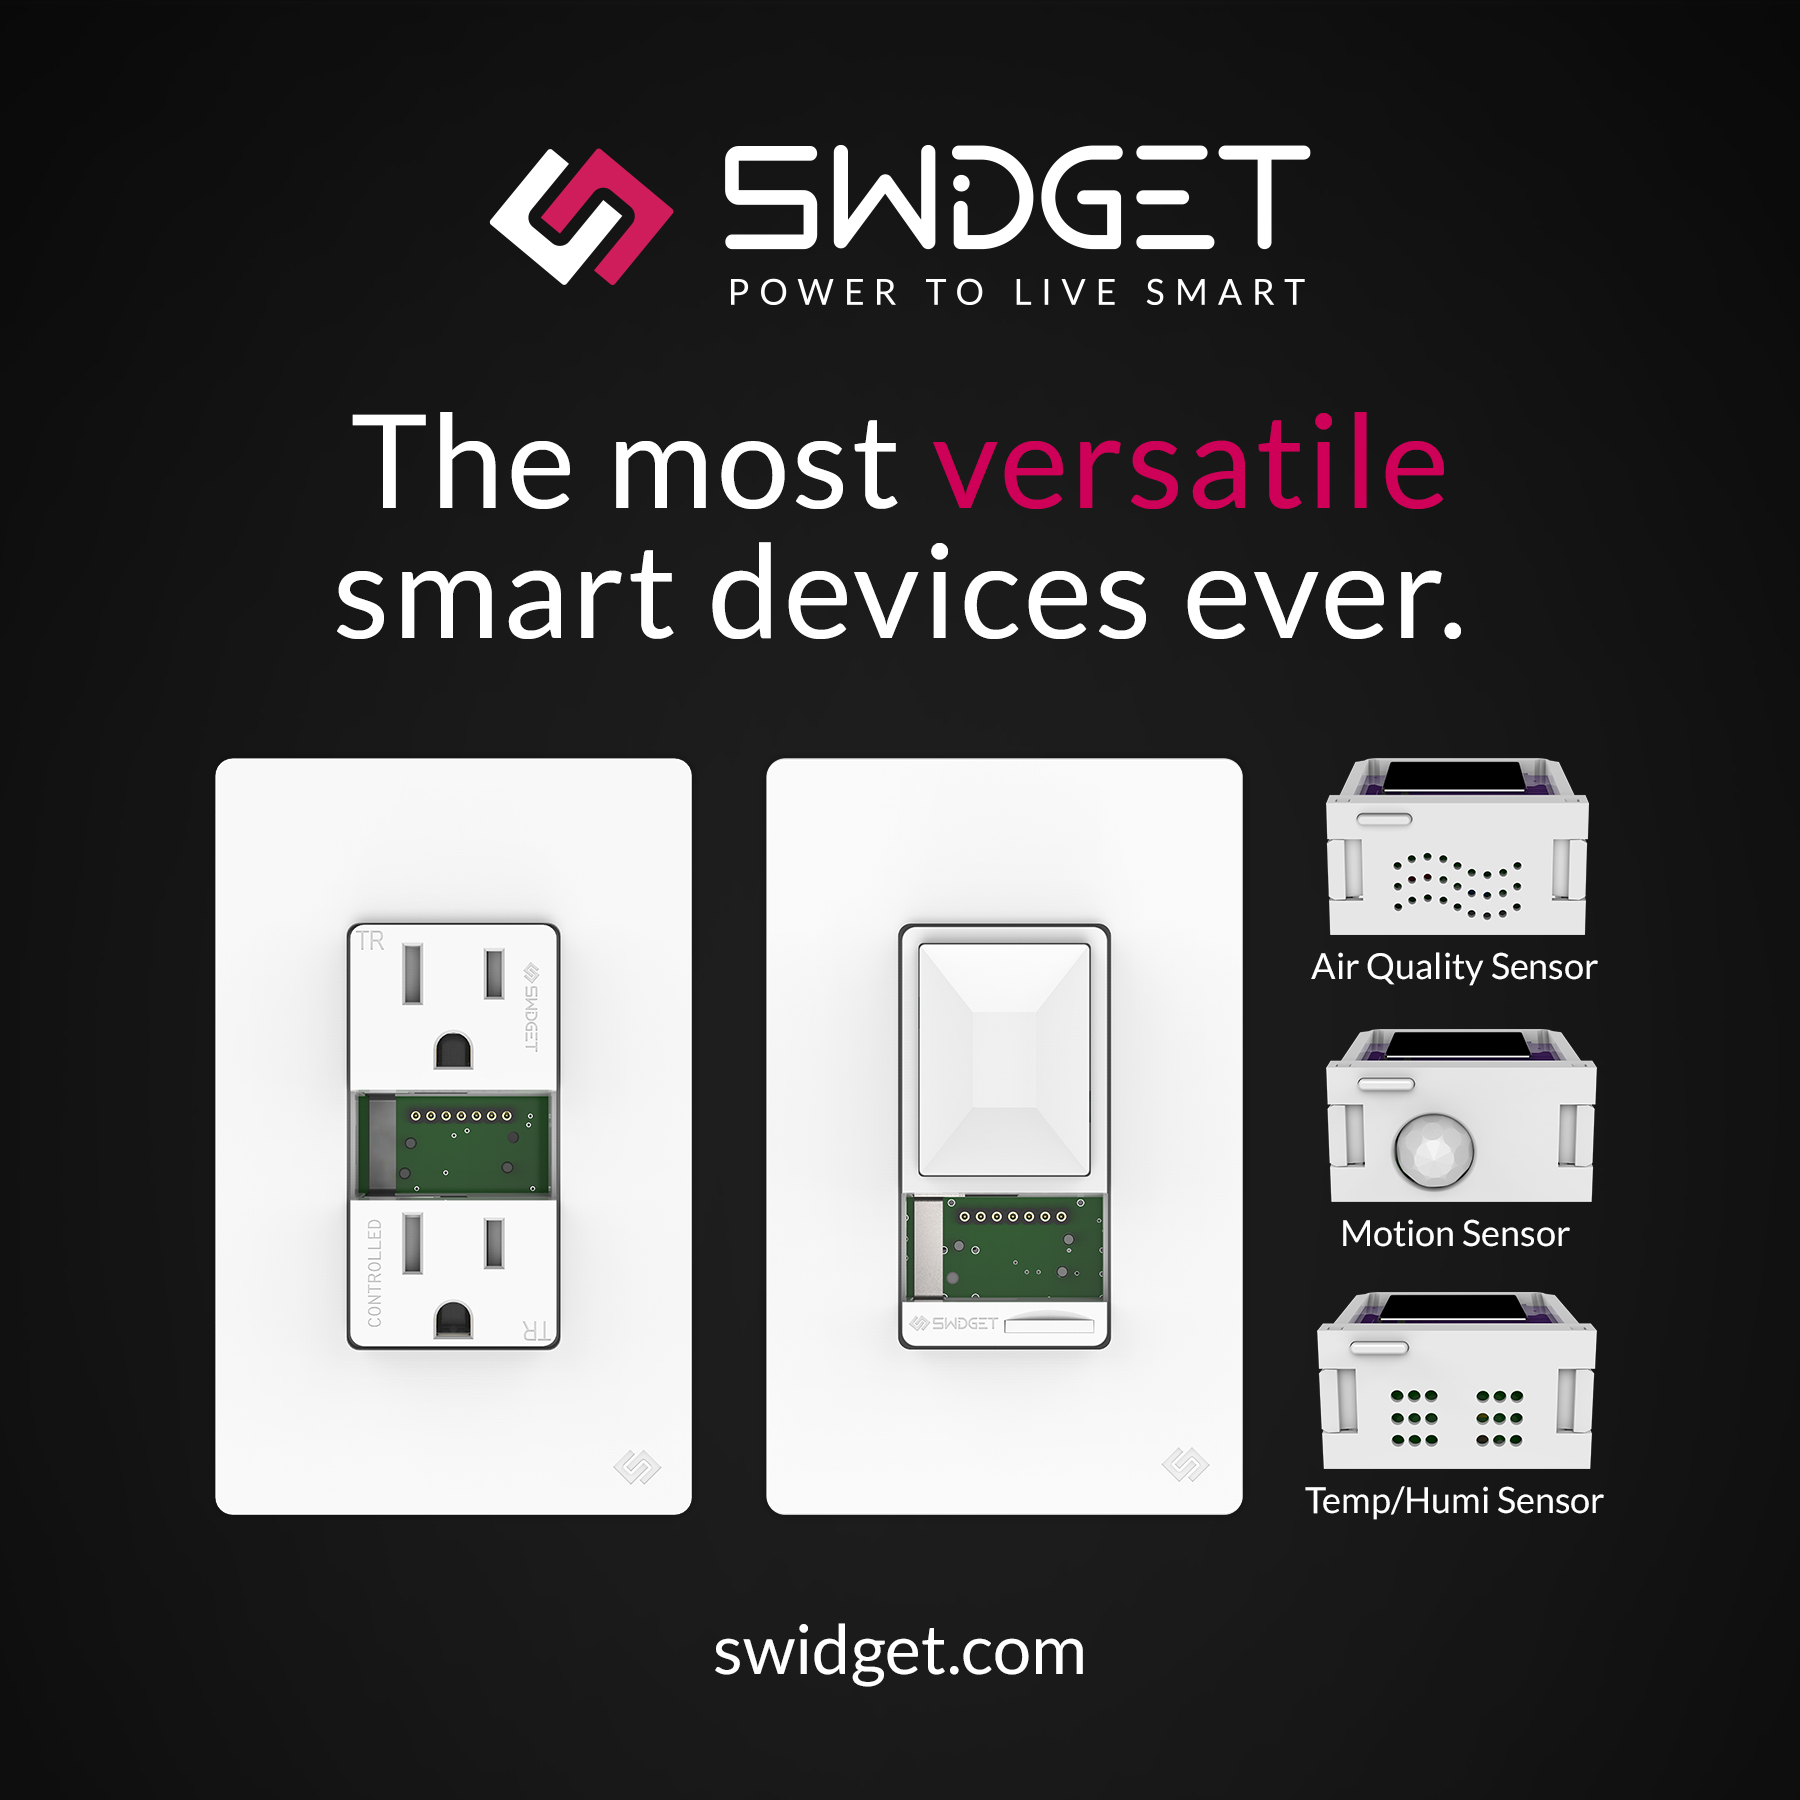 Modular smart device manufacturer, Swidget, earns award from the National Association of Home Builders